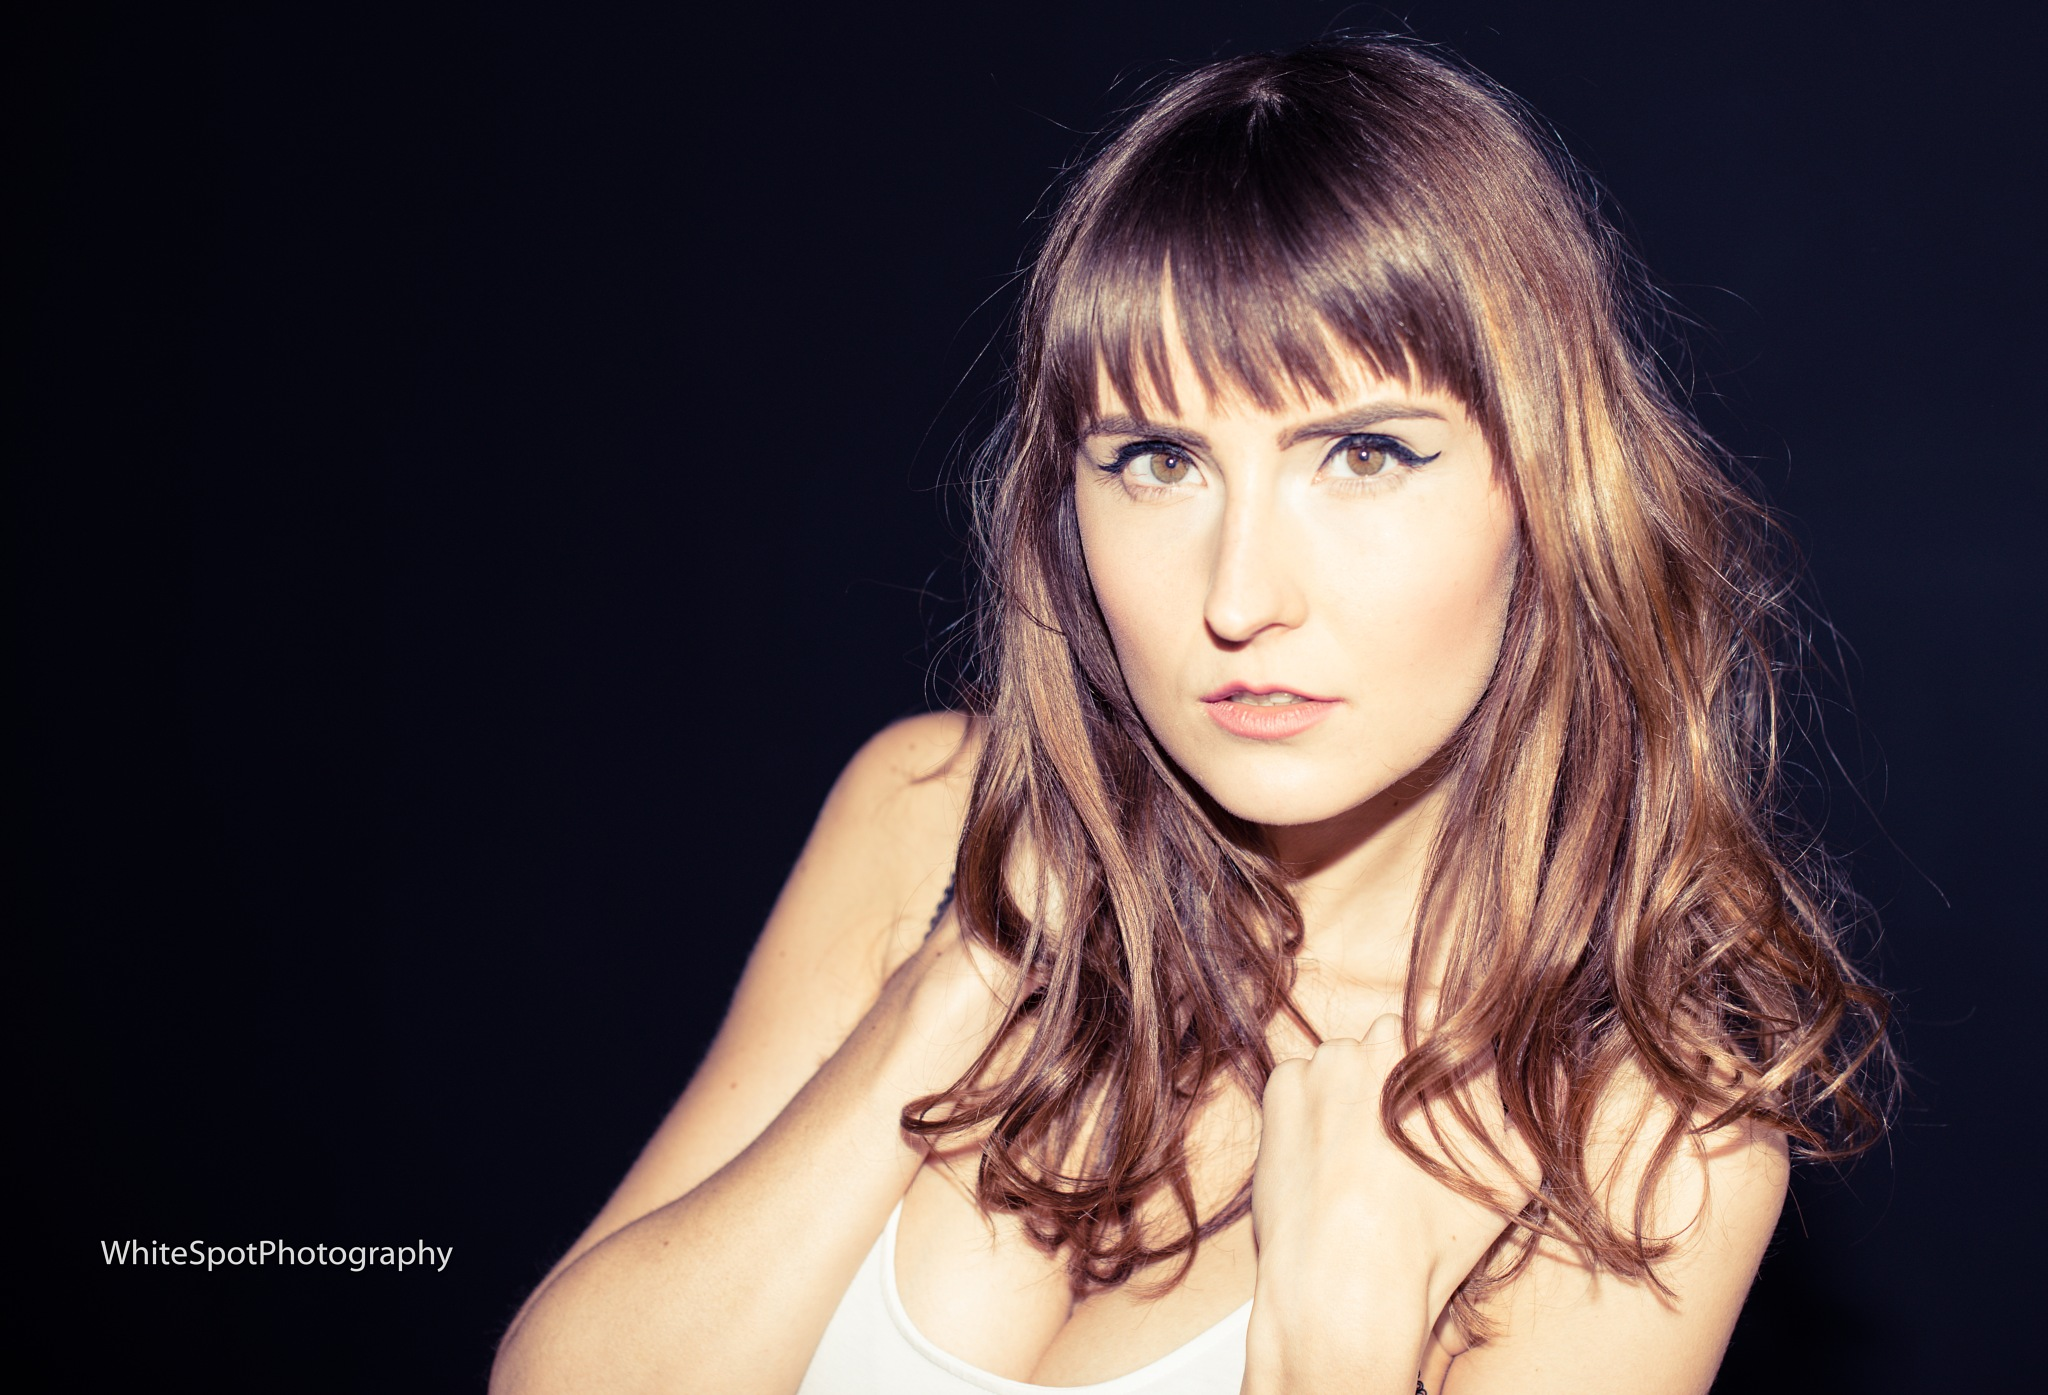 Jessica in Light by White Spot Photography